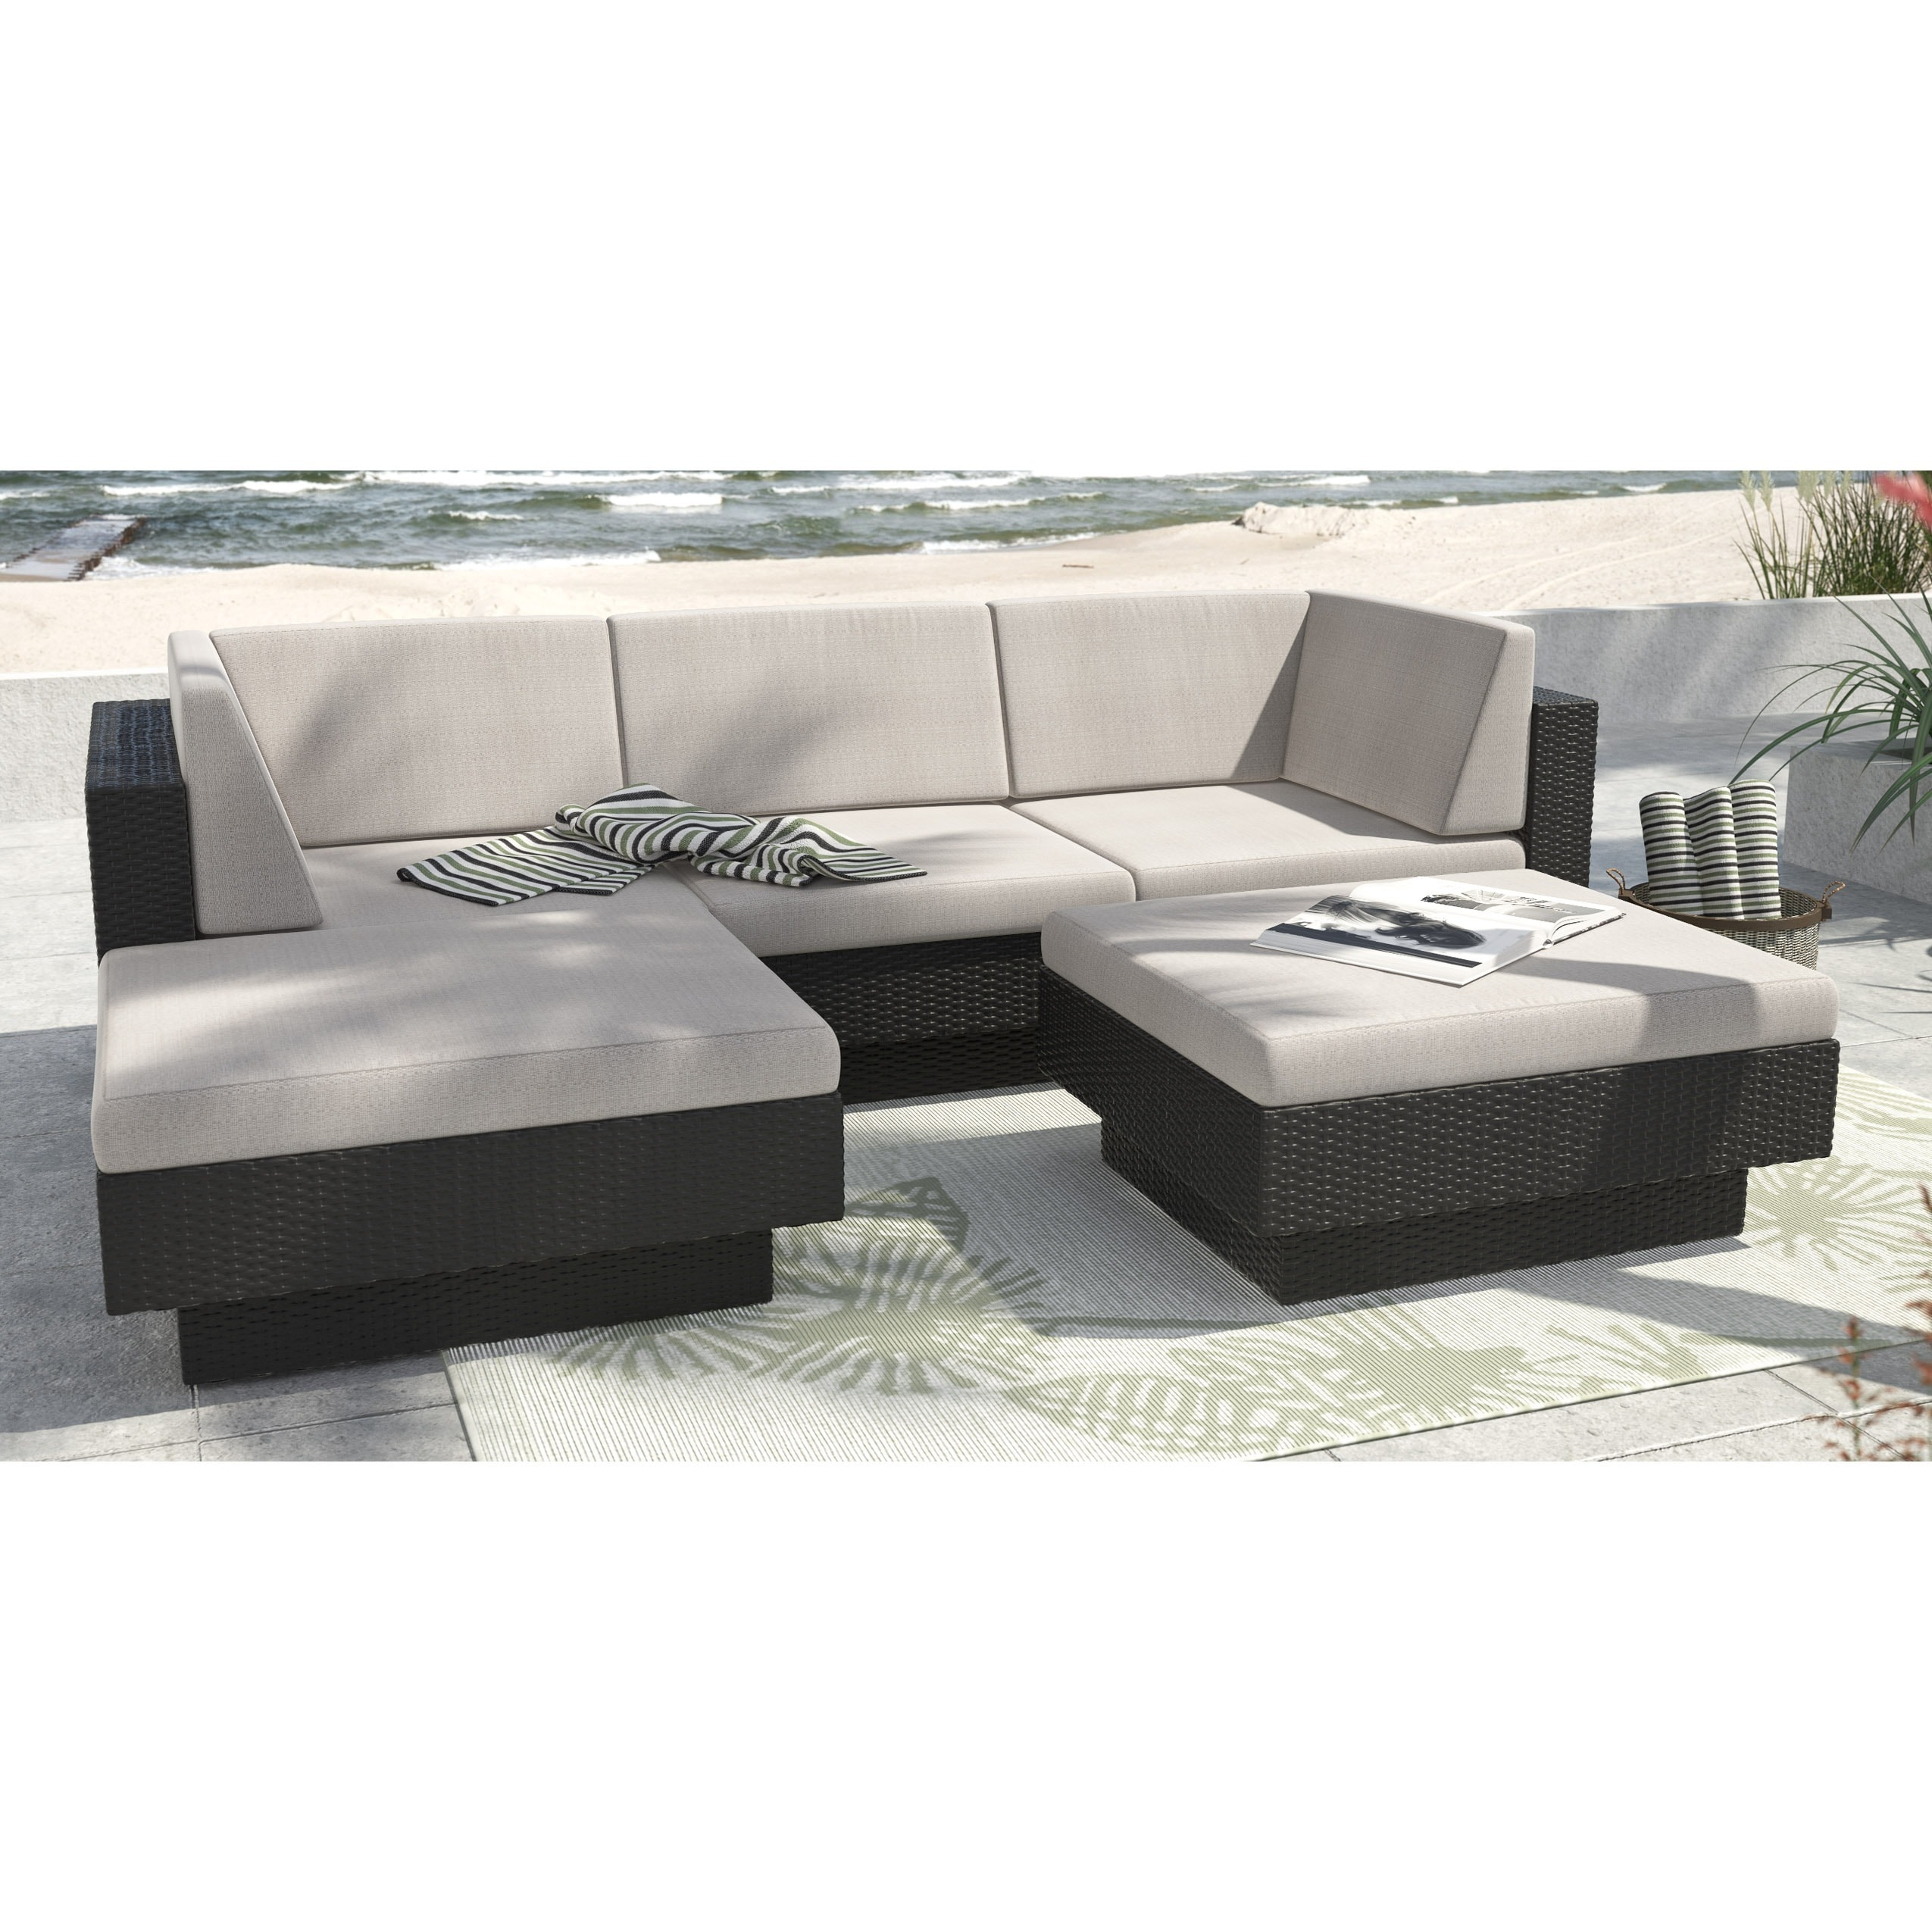 SONAX Park Terrace' Textured Black 5-piece Sectional Pati...